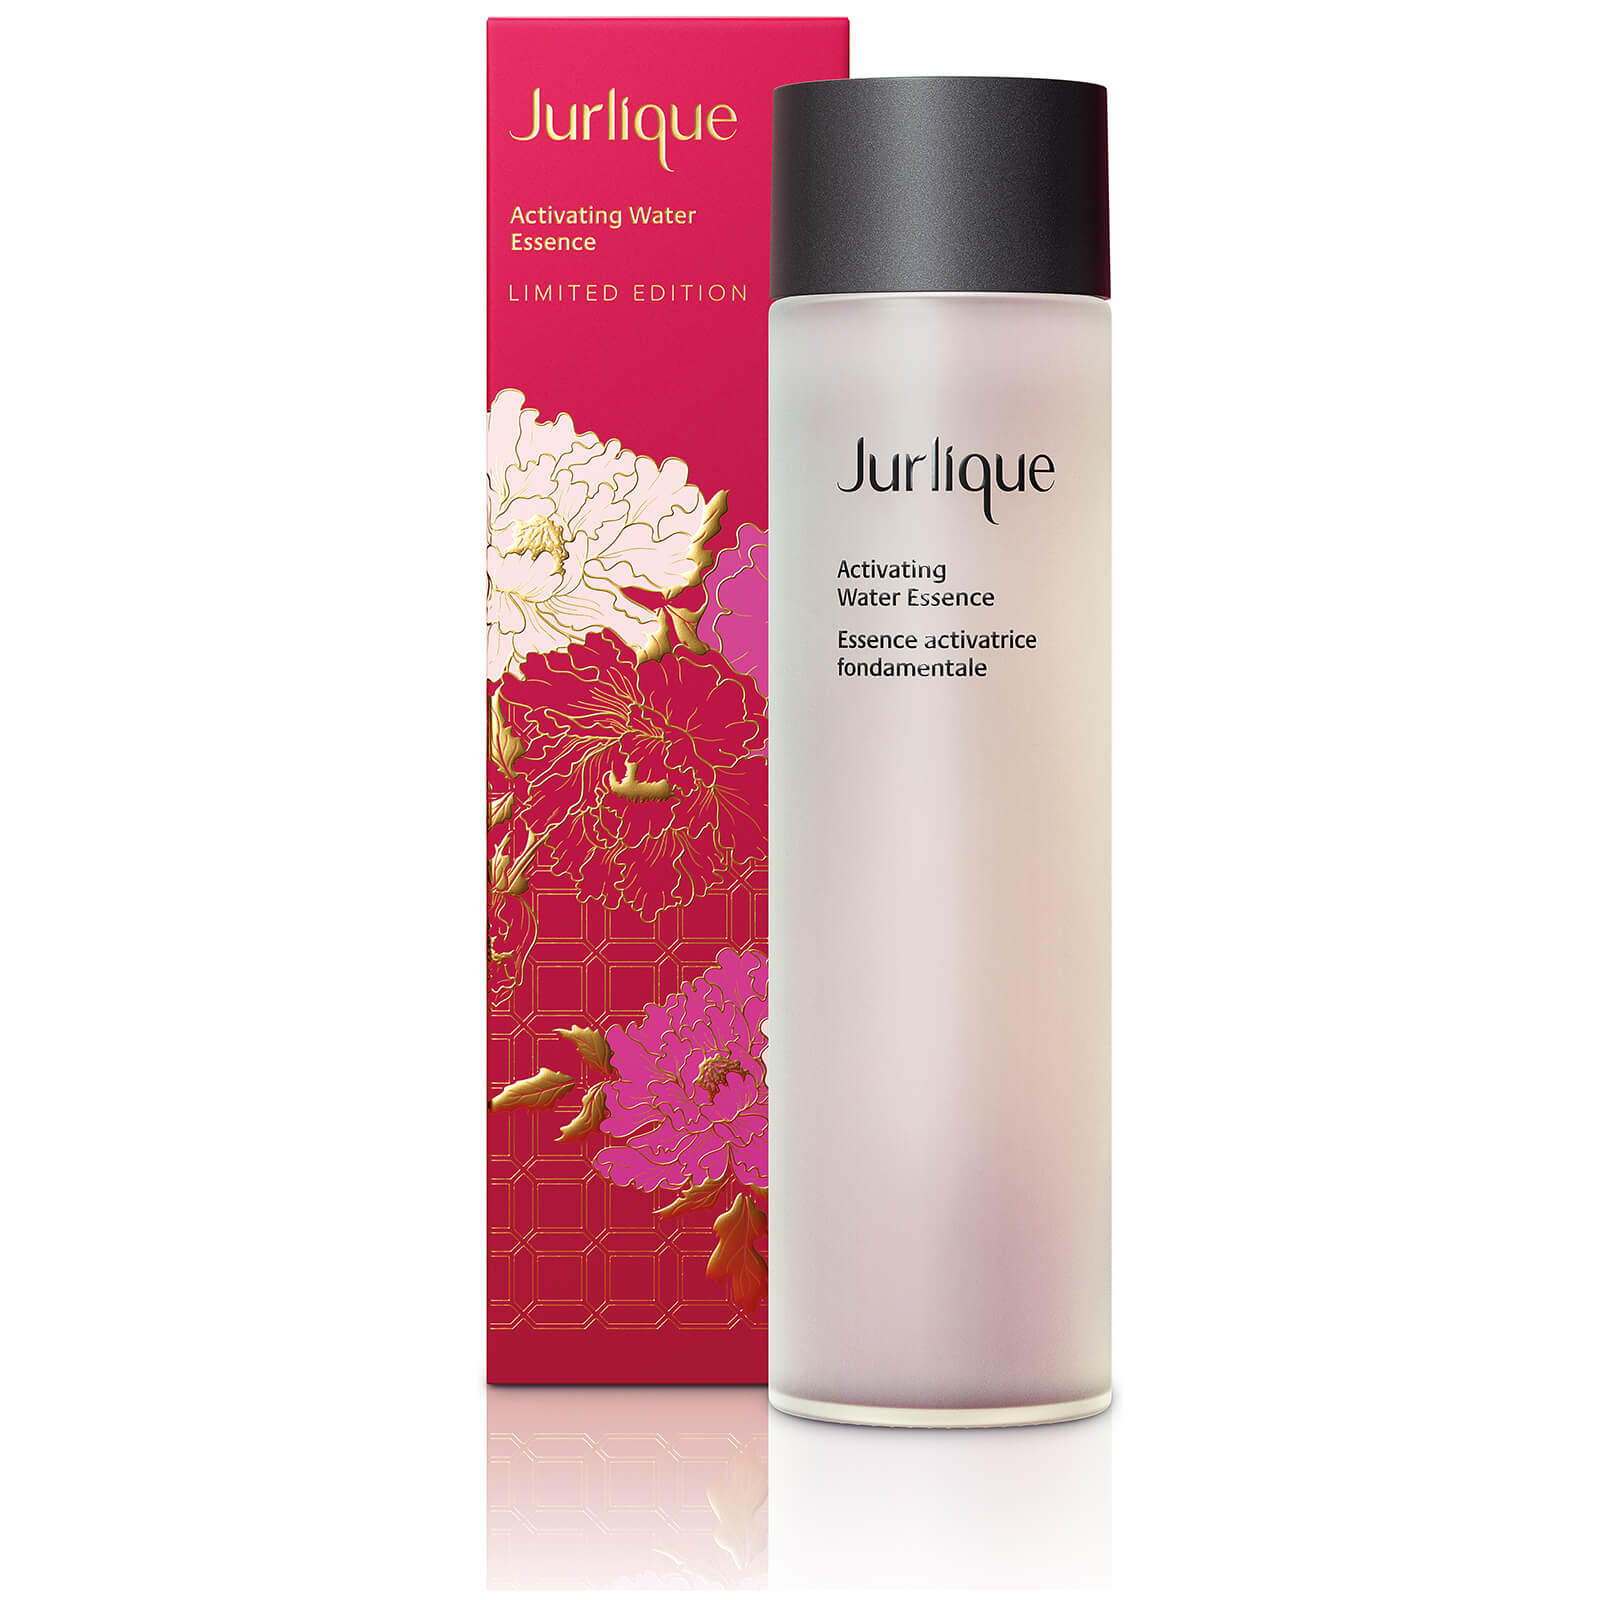 Jurlique Exclusive Activating Water Essence Limited Edition